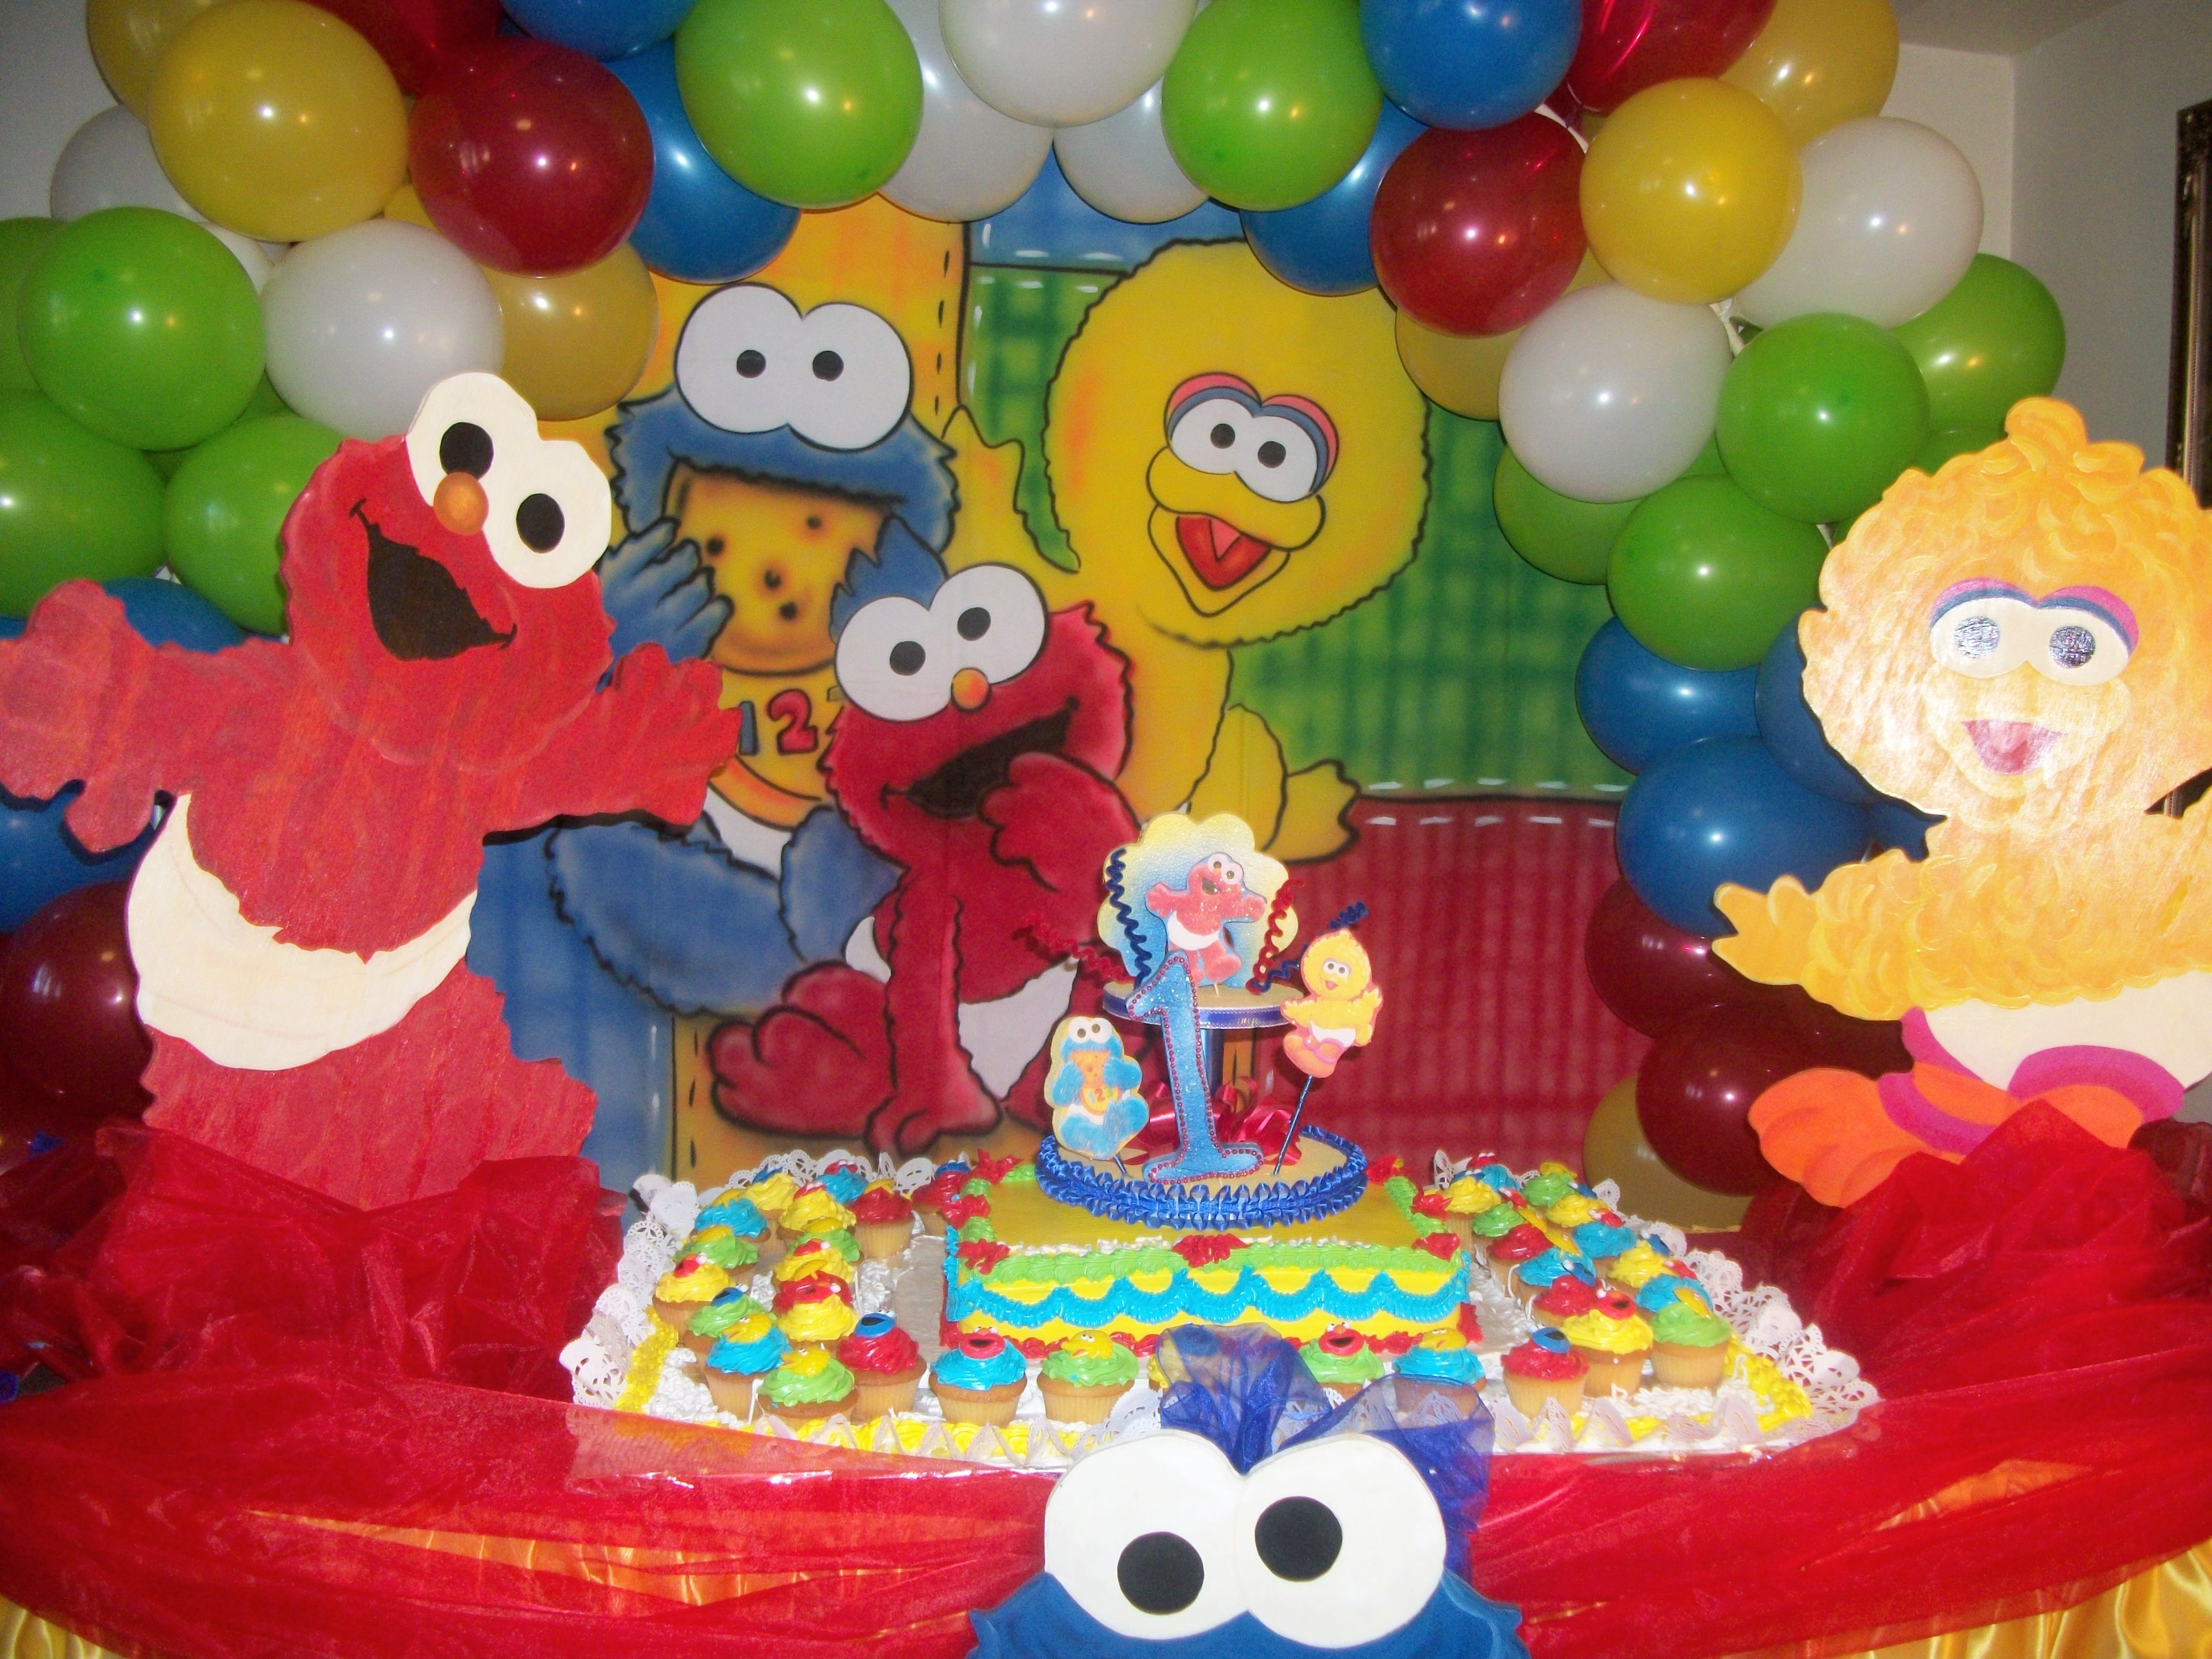 Pin By Debbie Walther On Baby Shower Ideas Sesame Street Birthday